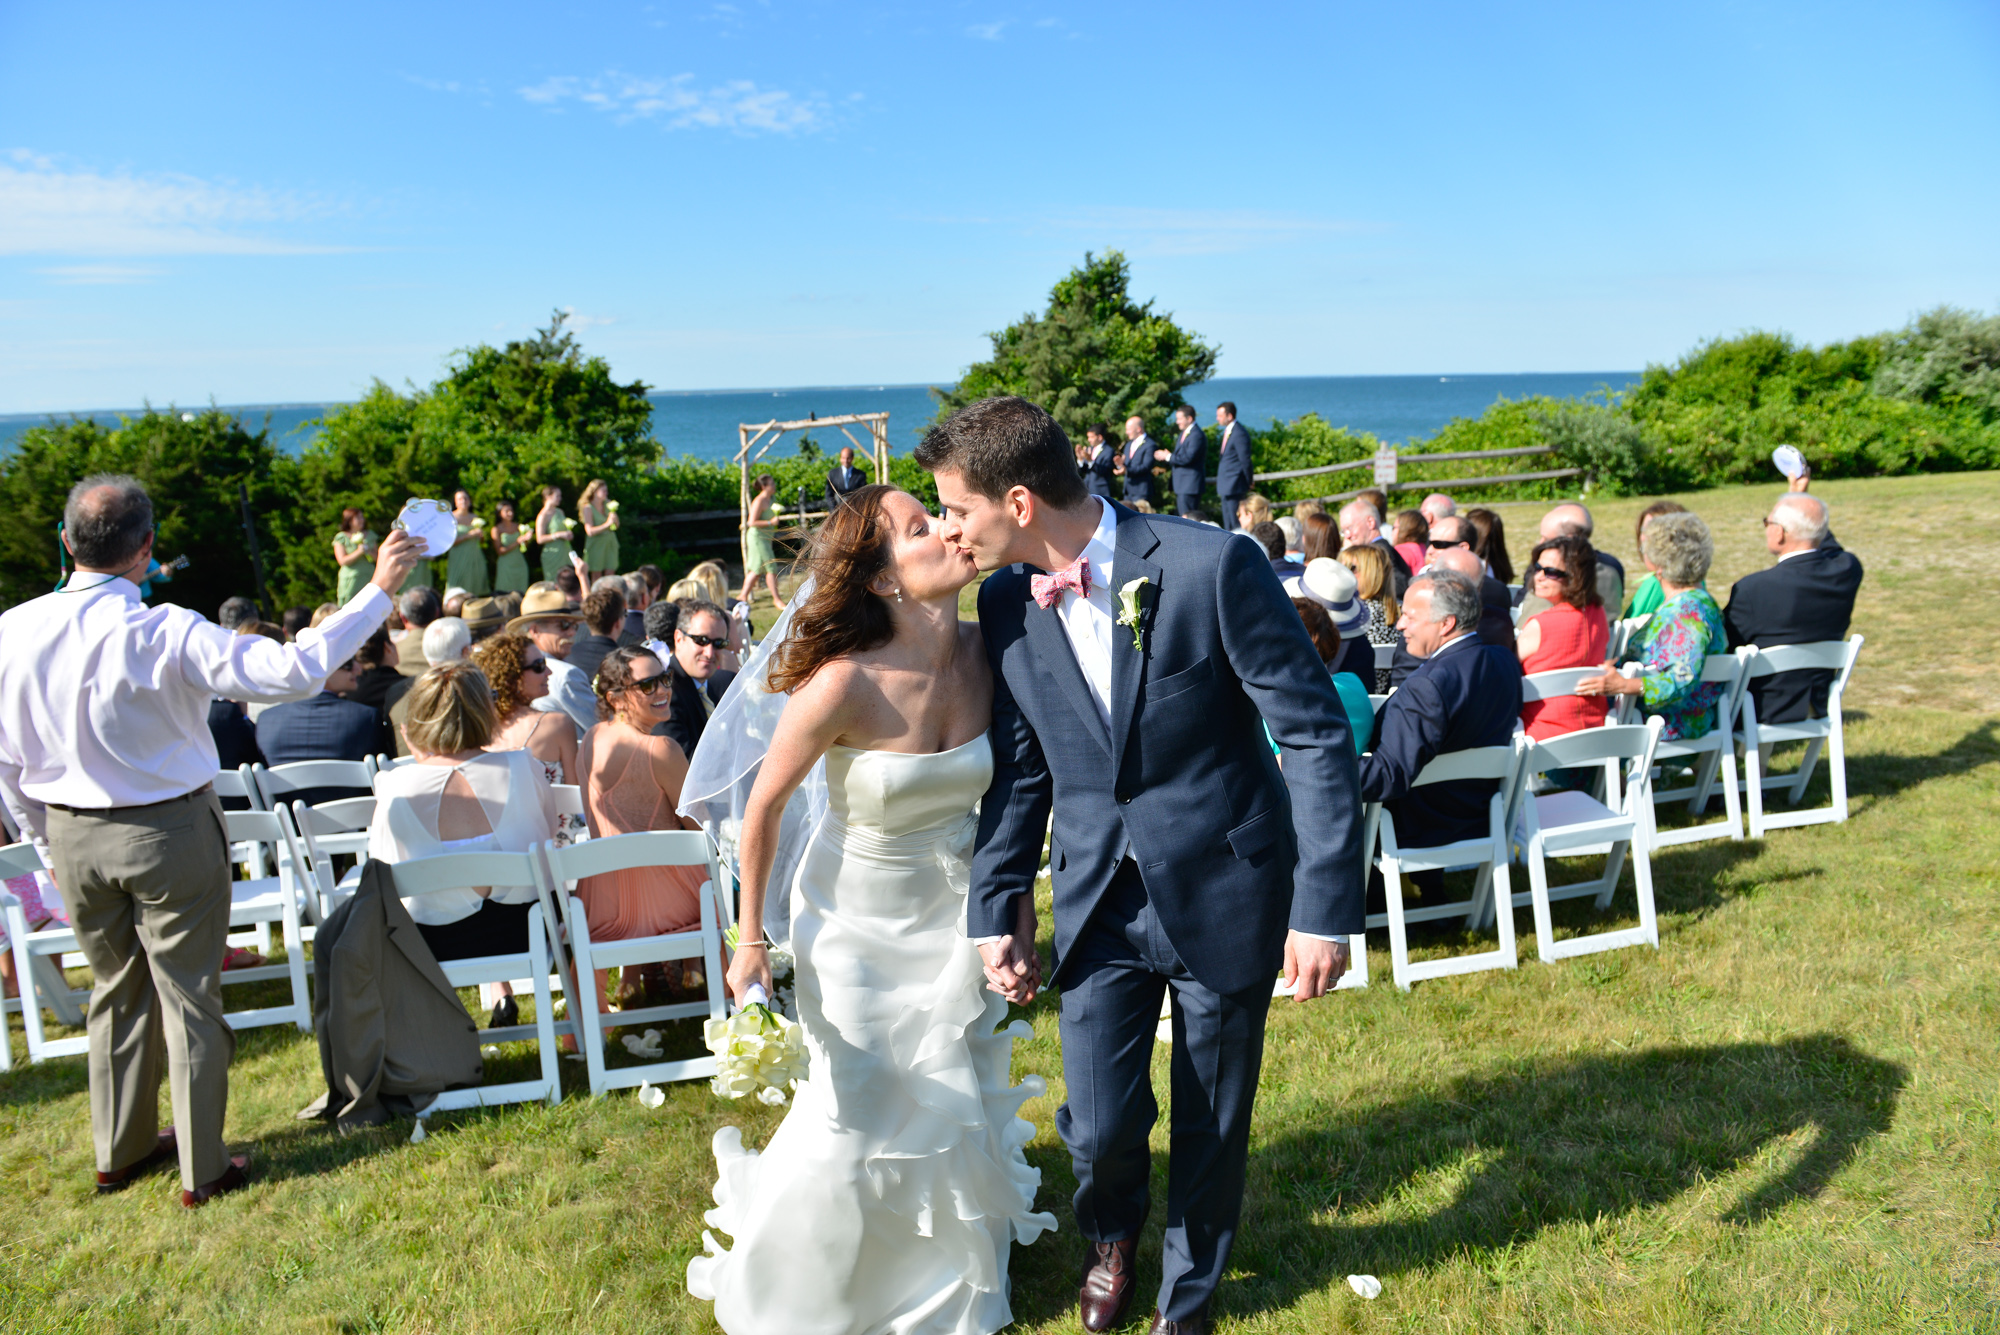 A bride and groom exit their wedding ceremony at the East Chop Lighthouse in Oak Bluffs photo by David Welch Photography